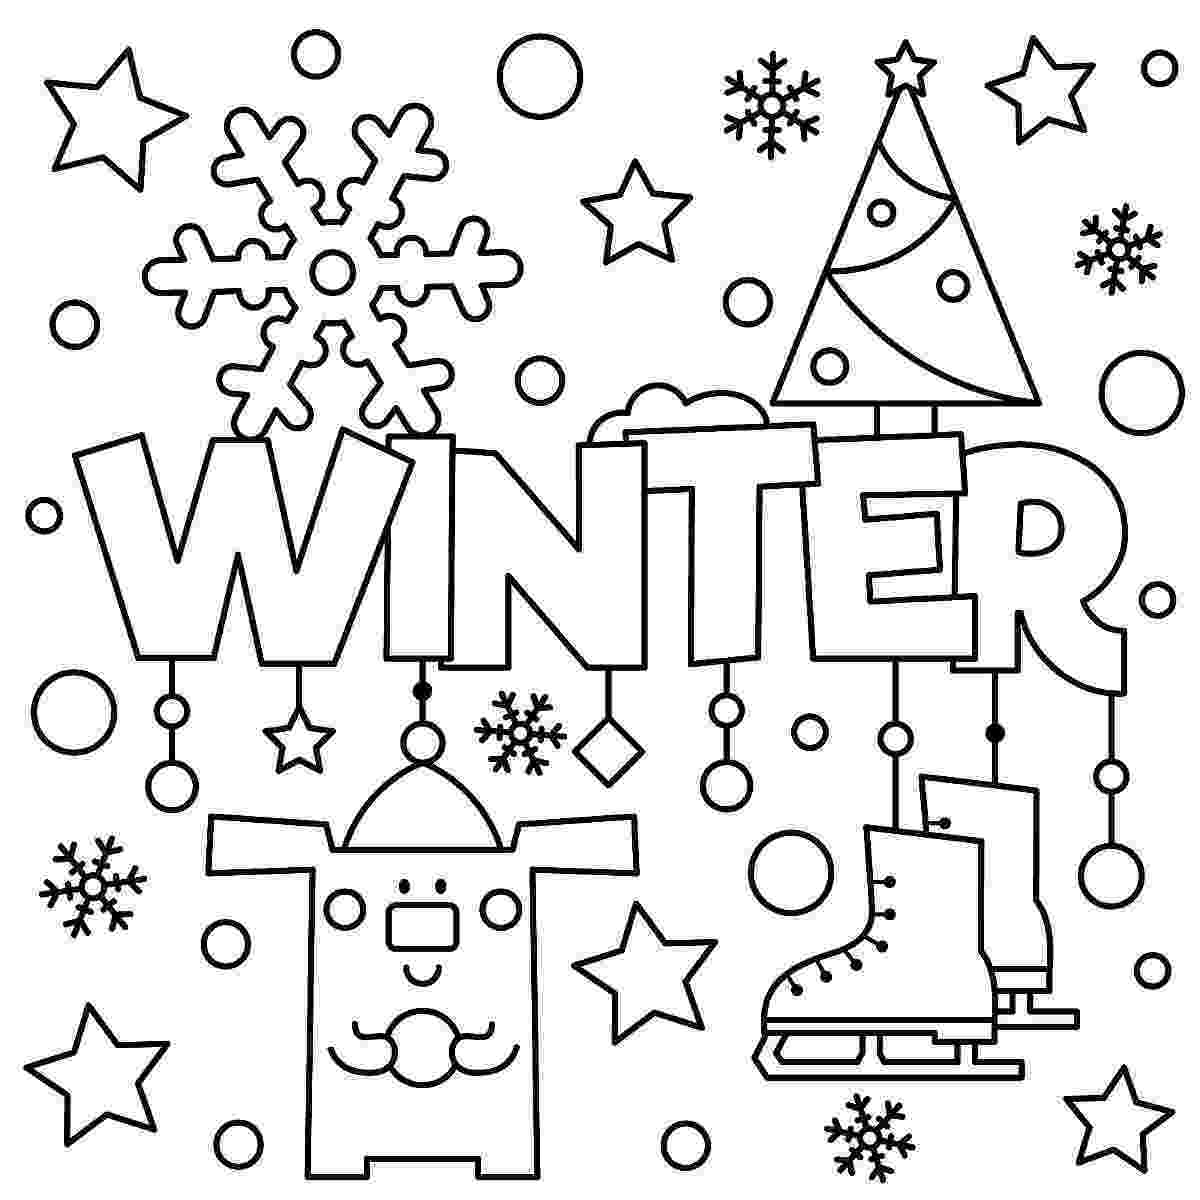 colouring sheets winter winter coloring pages to download and print for free colouring sheets winter